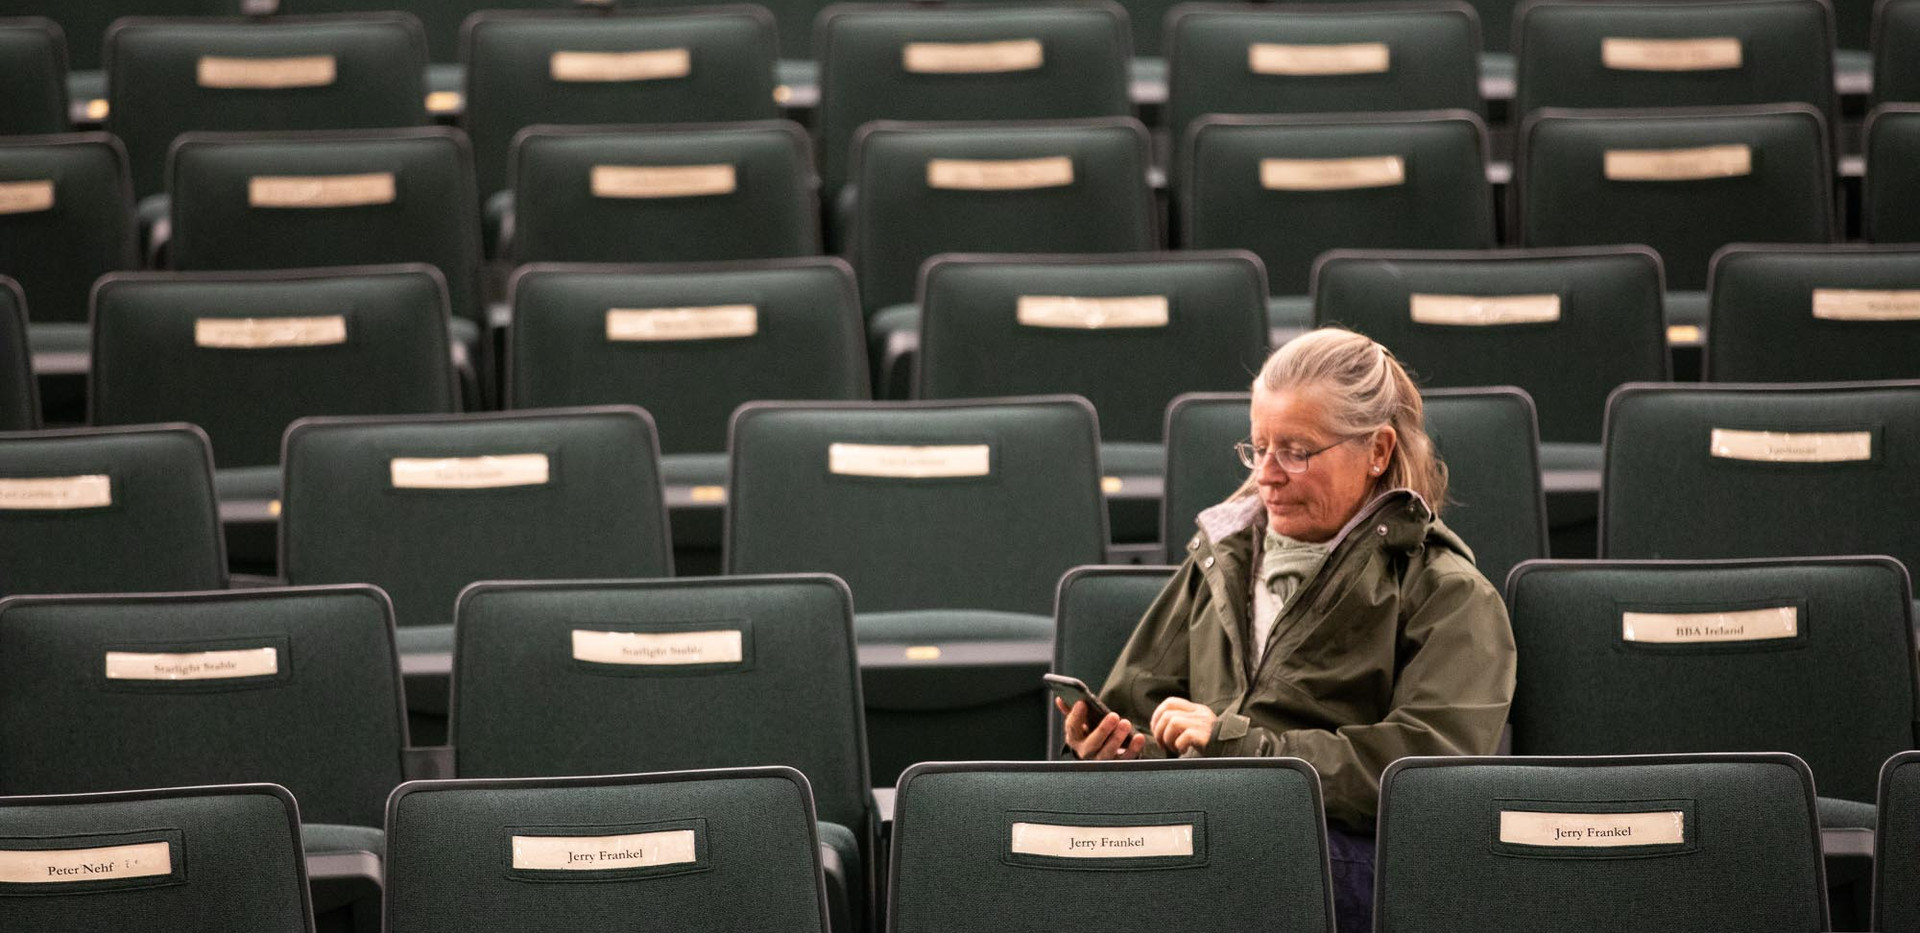 Lena sits in the auction house at Keeneland Race Track. Each buyer is assigned a seat  with a name plate. Lena does not have a reserved chair, but she soaks in the experience prior to watching a horse she bred race at Keeneland.